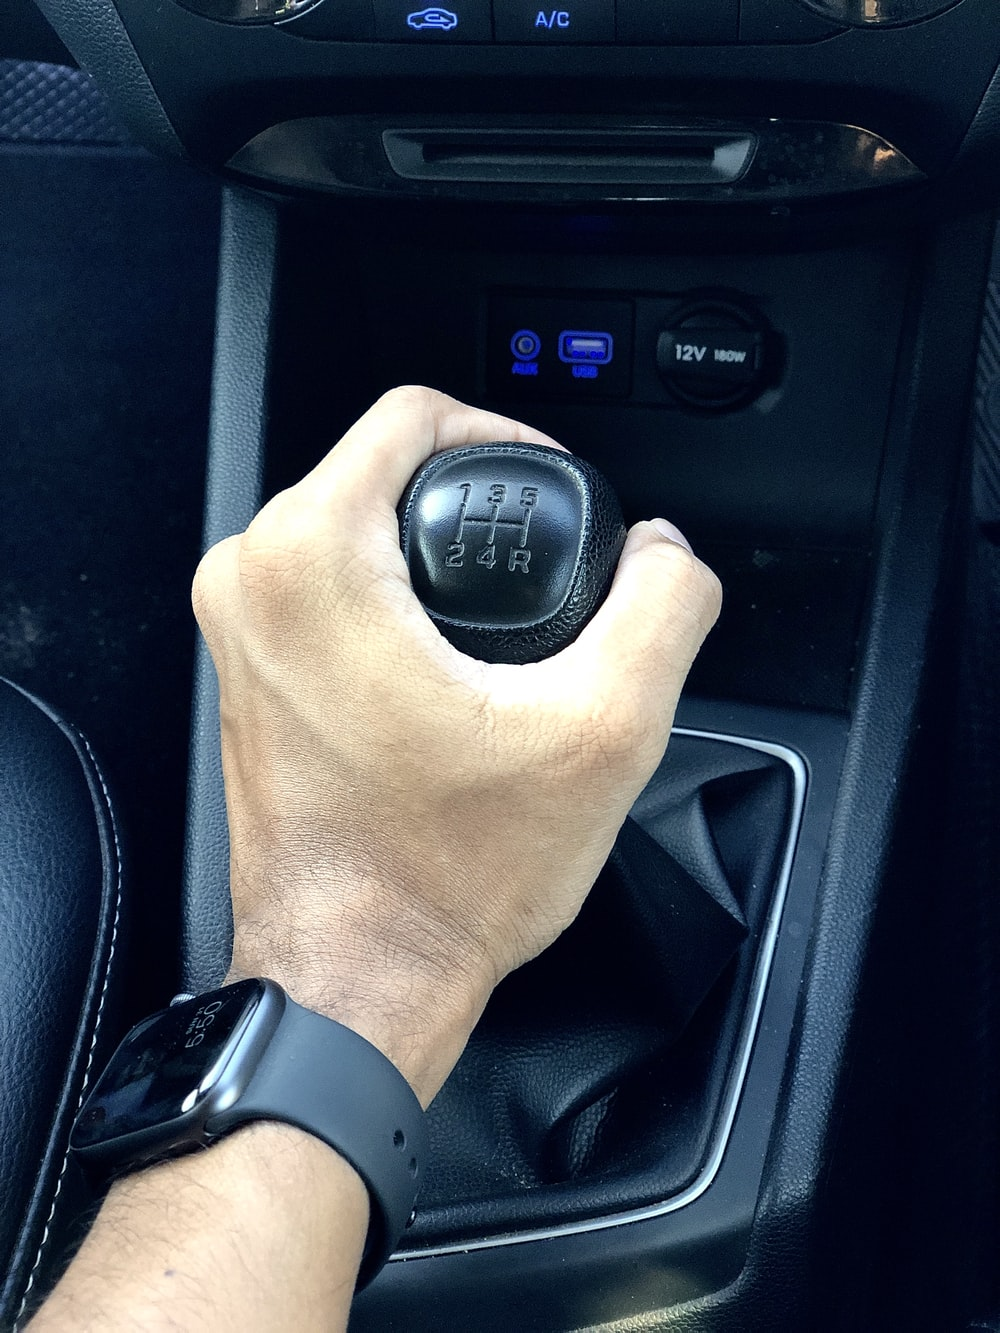 person holding black car gear shift lever